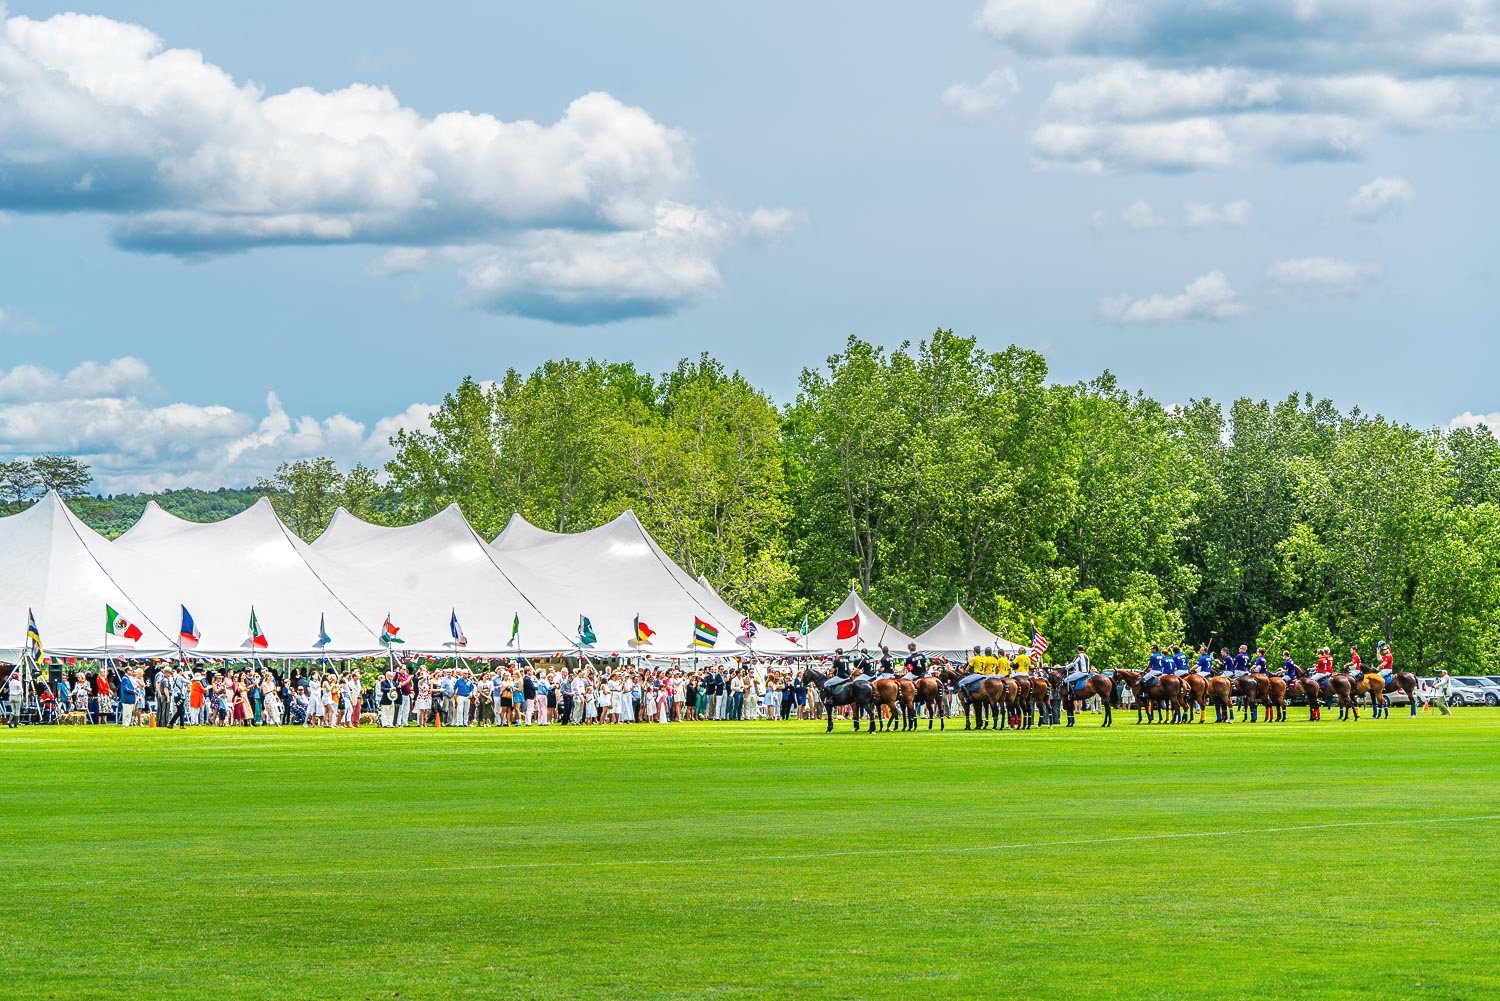 polo ponies and riders line up in front ot the grandstands prior to the match. .jpg